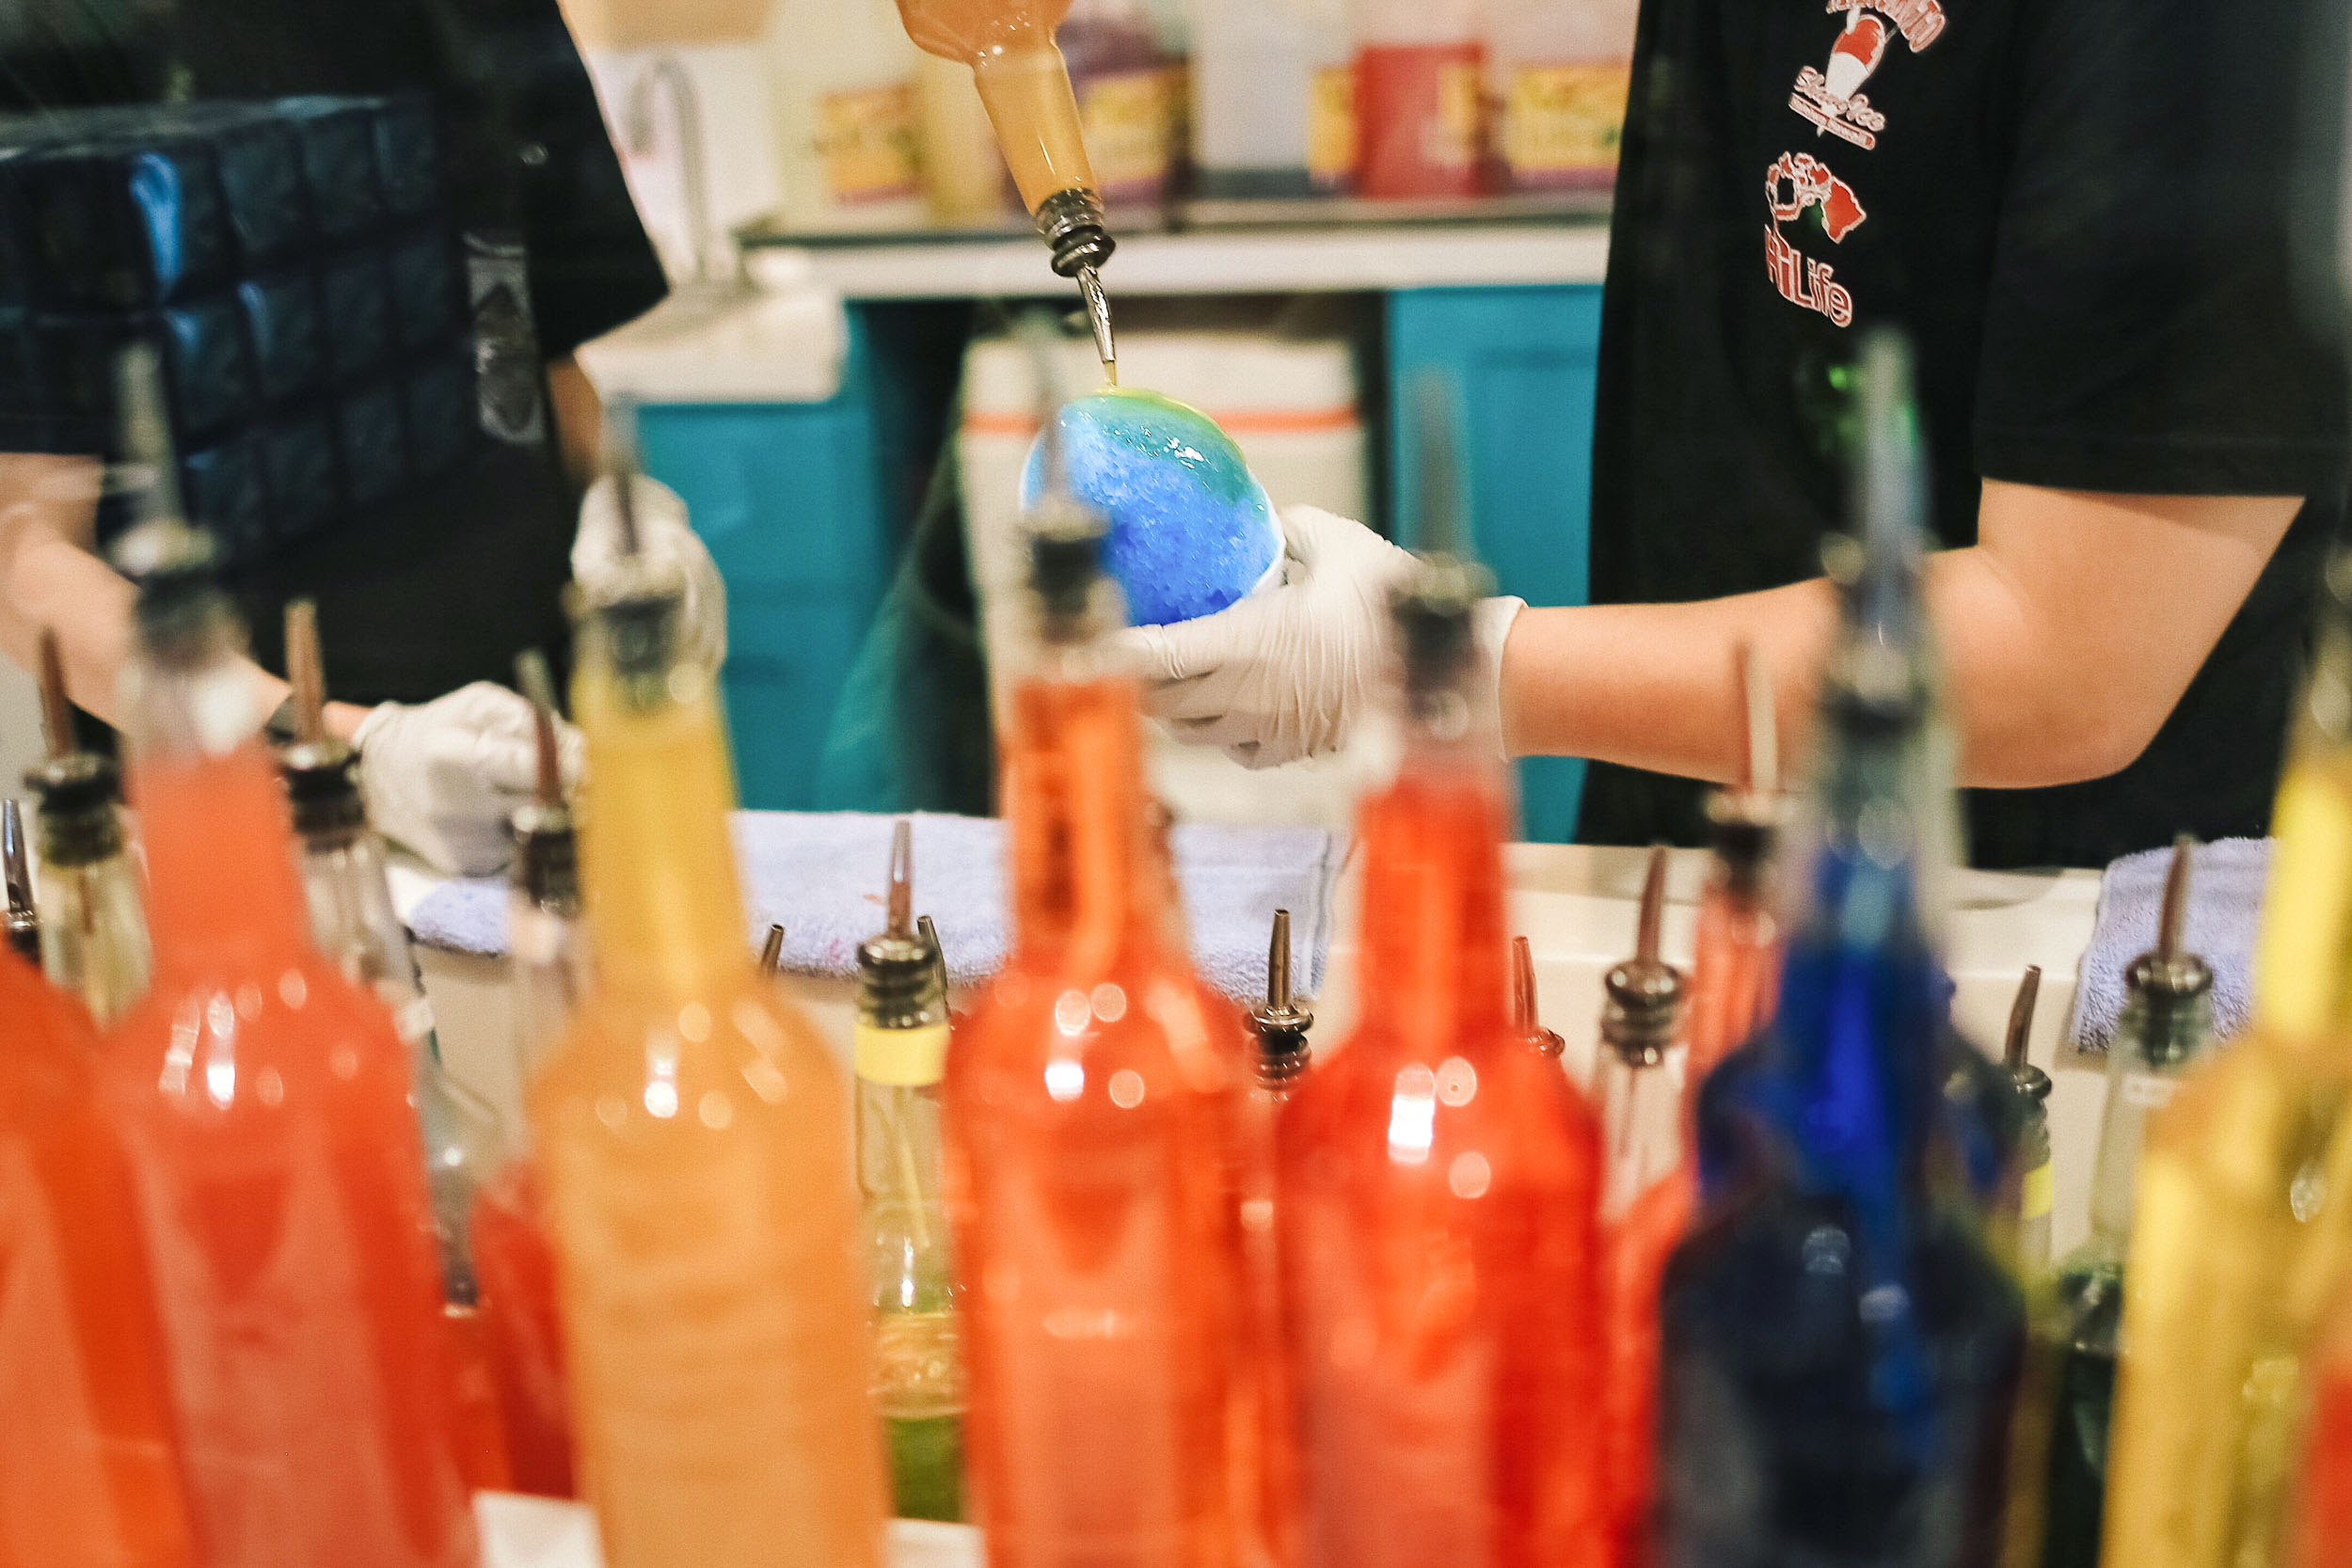 Flavored shave ice syrups